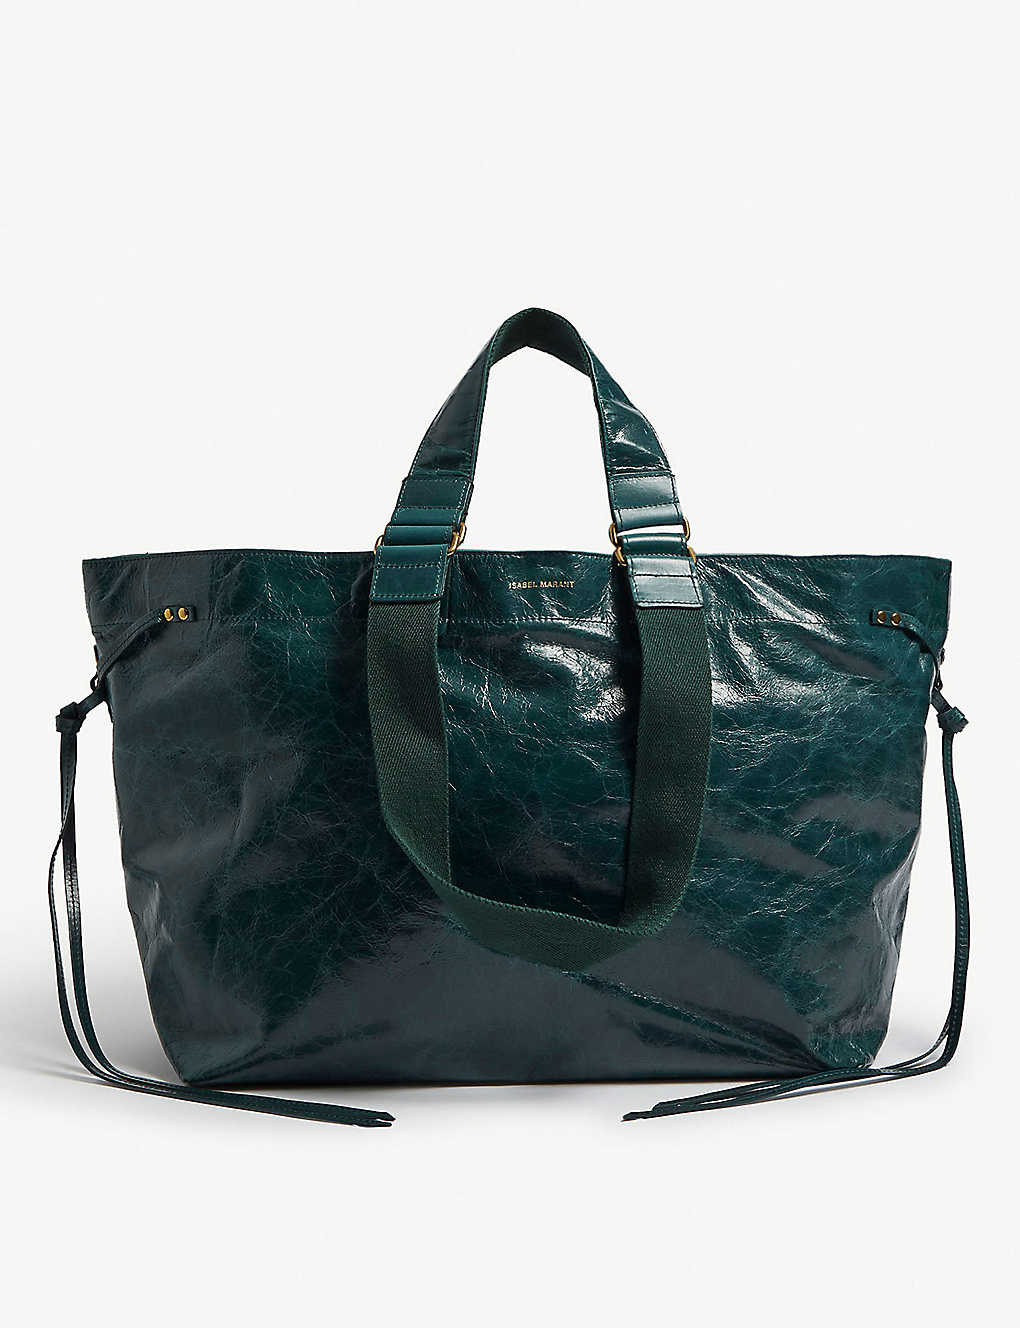 22d59ccd4d4 ISABEL MARANT - Wardy crinkled leather shopper | Selfridges.com